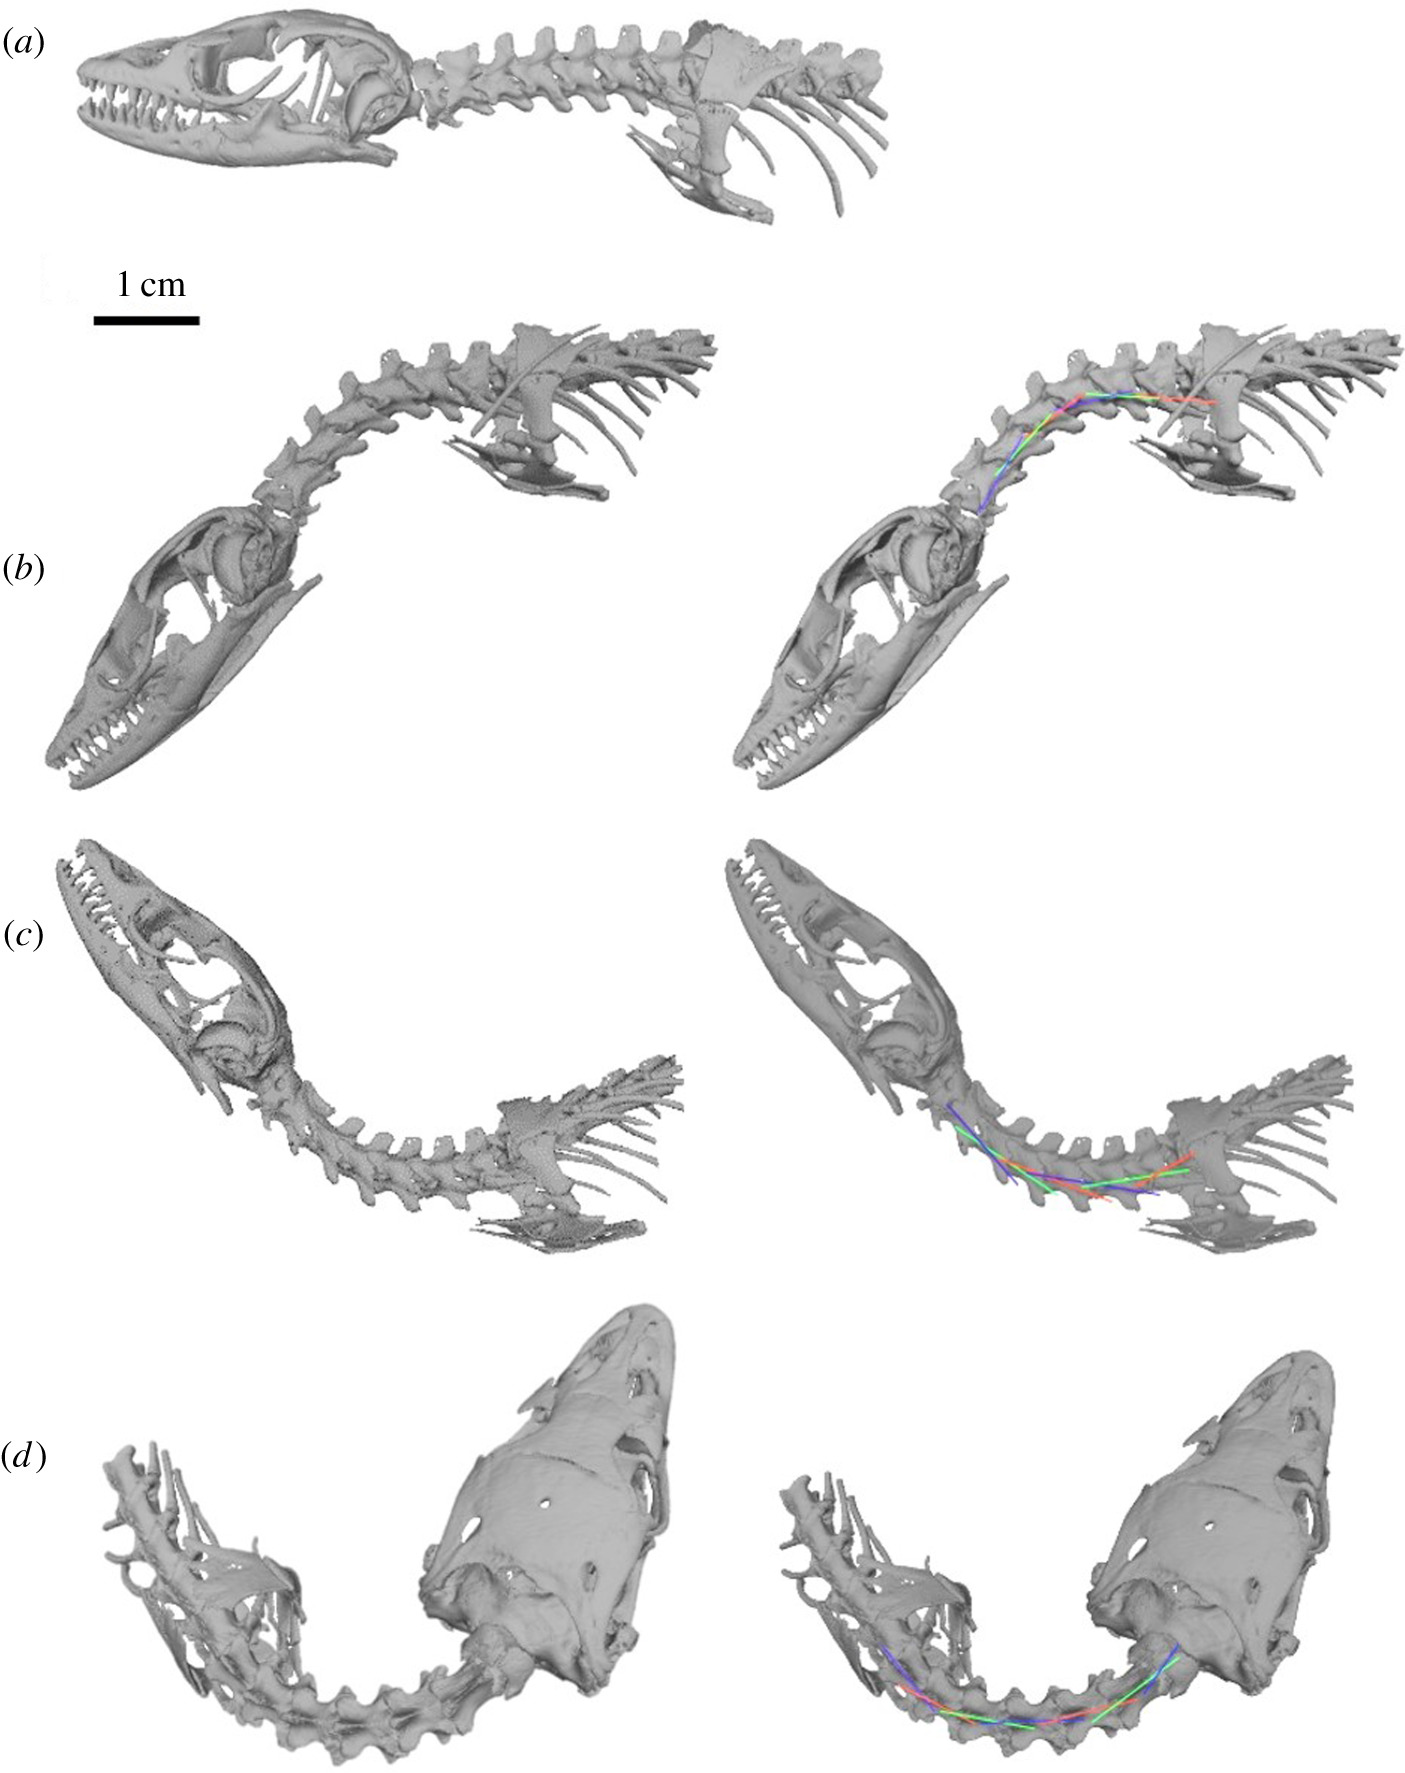 A Method For Deducing Neck Mobility In Plesiosaurs Using